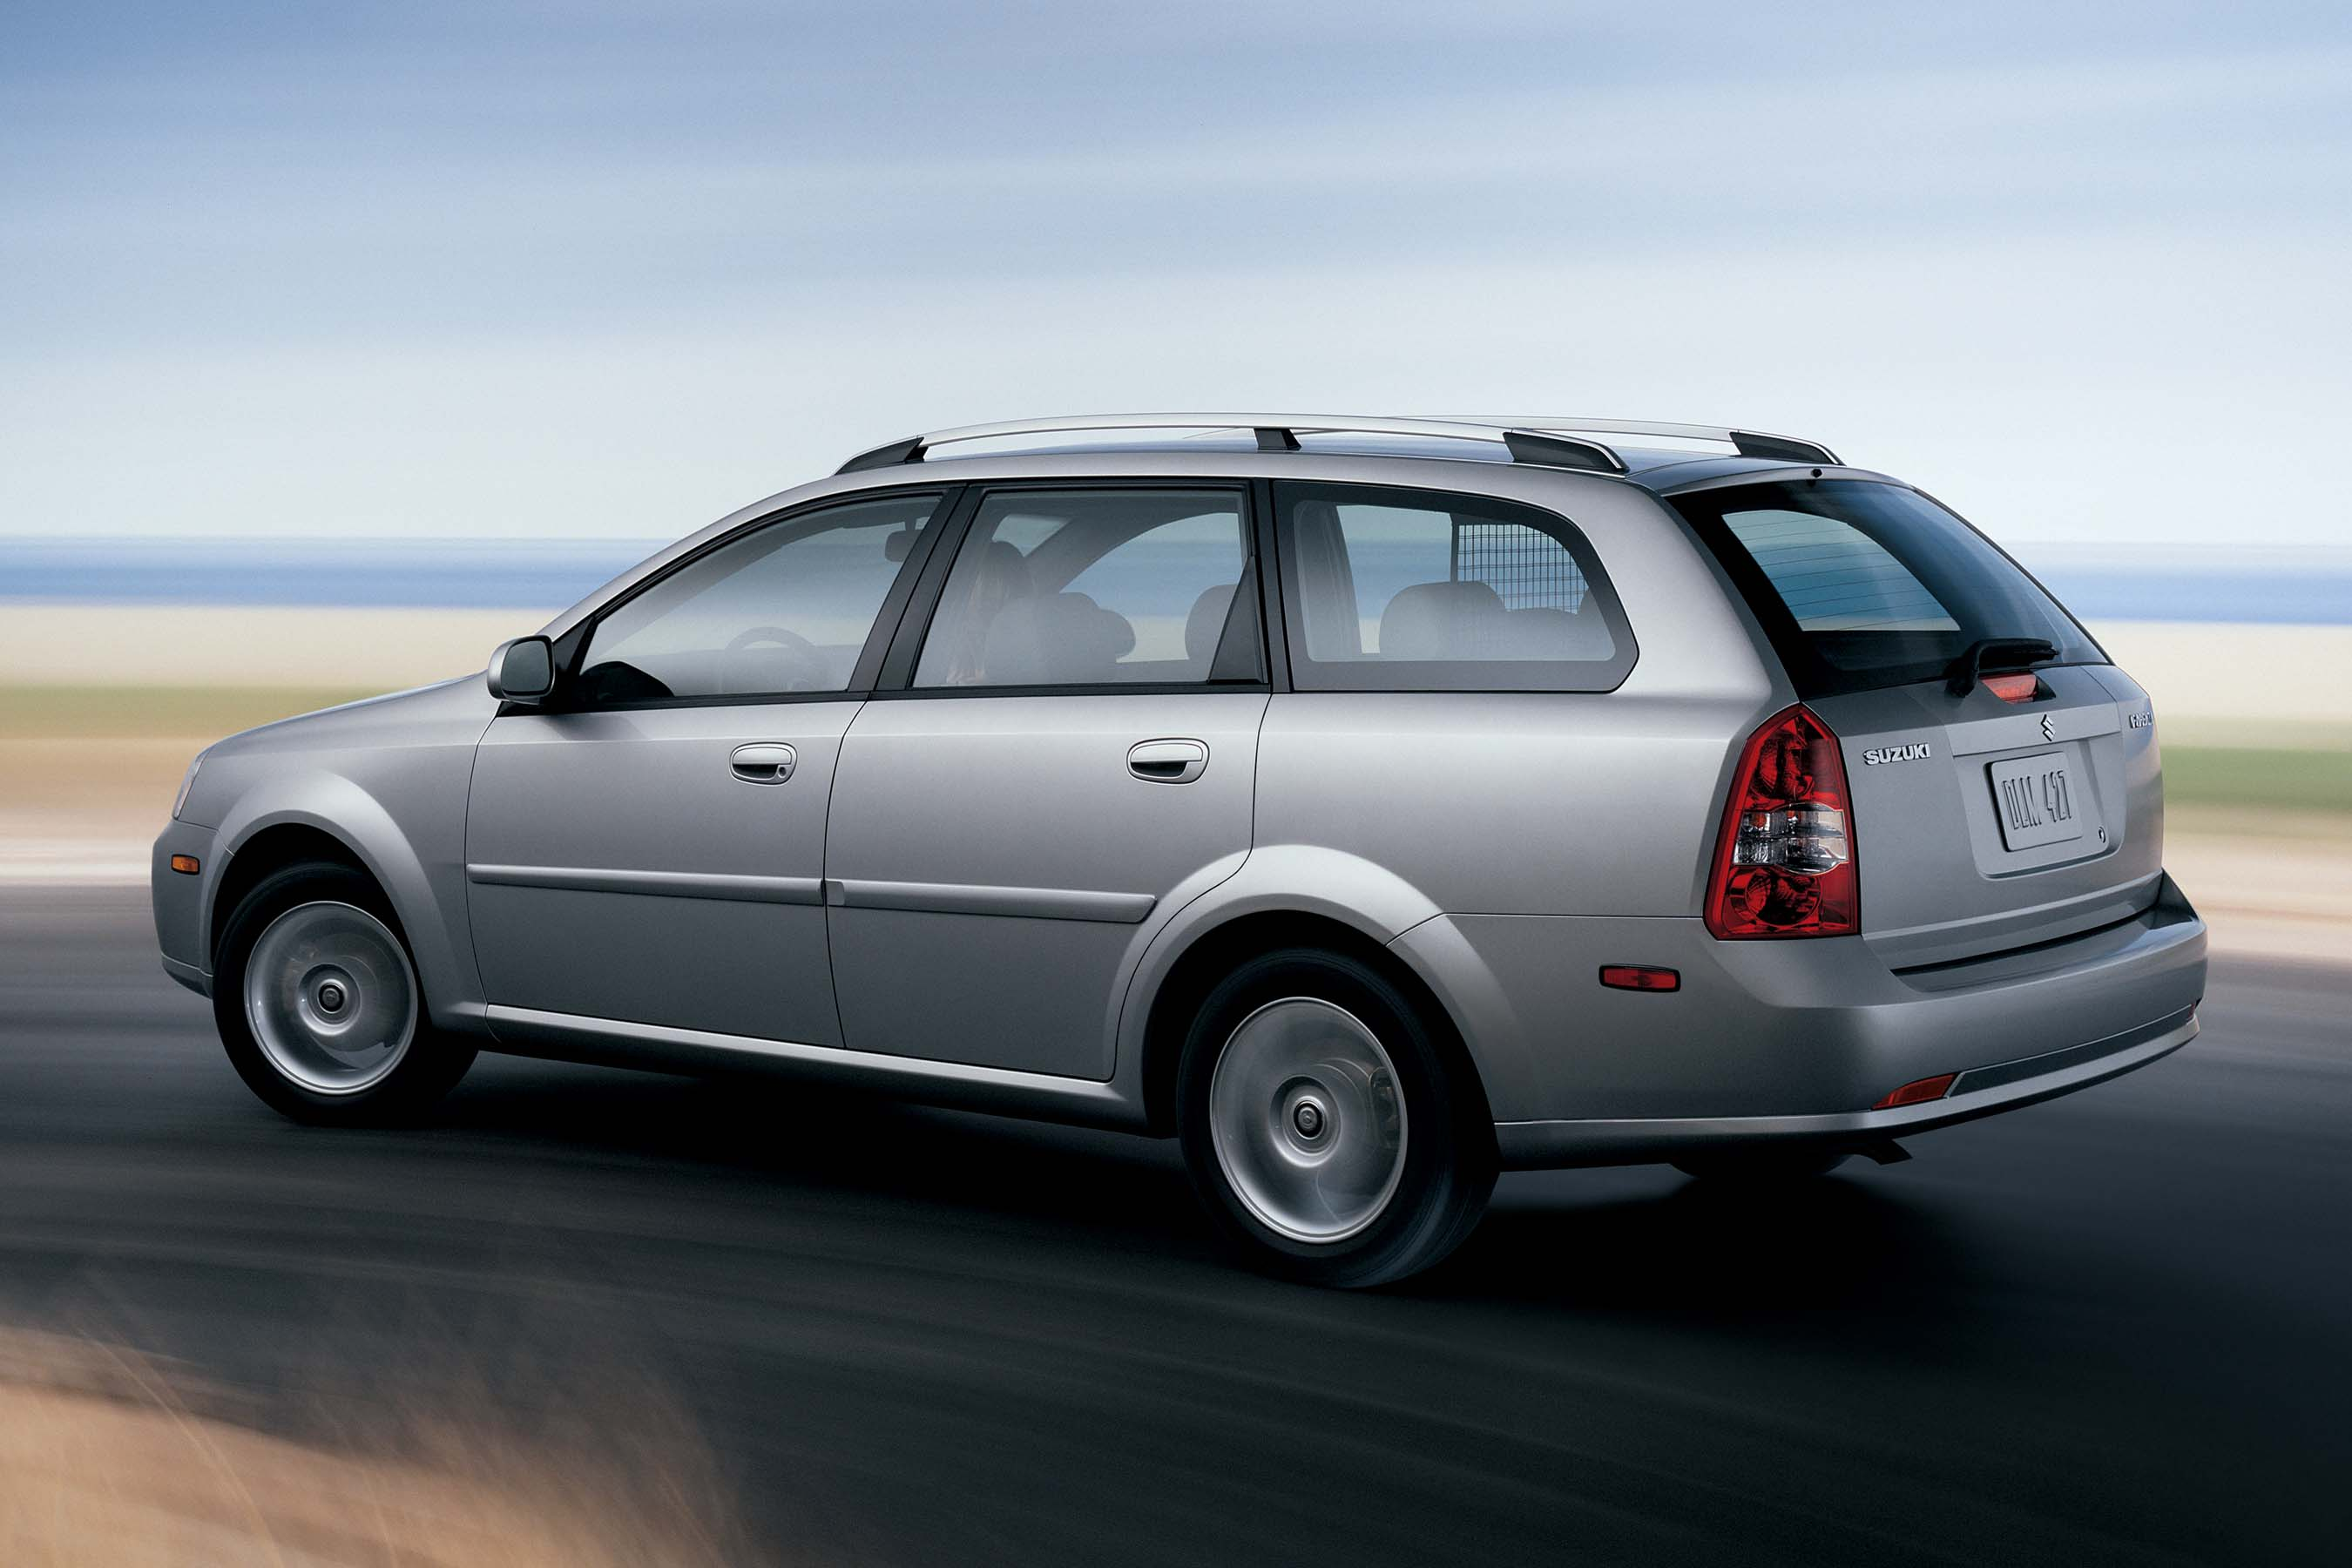 2005 suzuki forenza information and photos zombiedrive